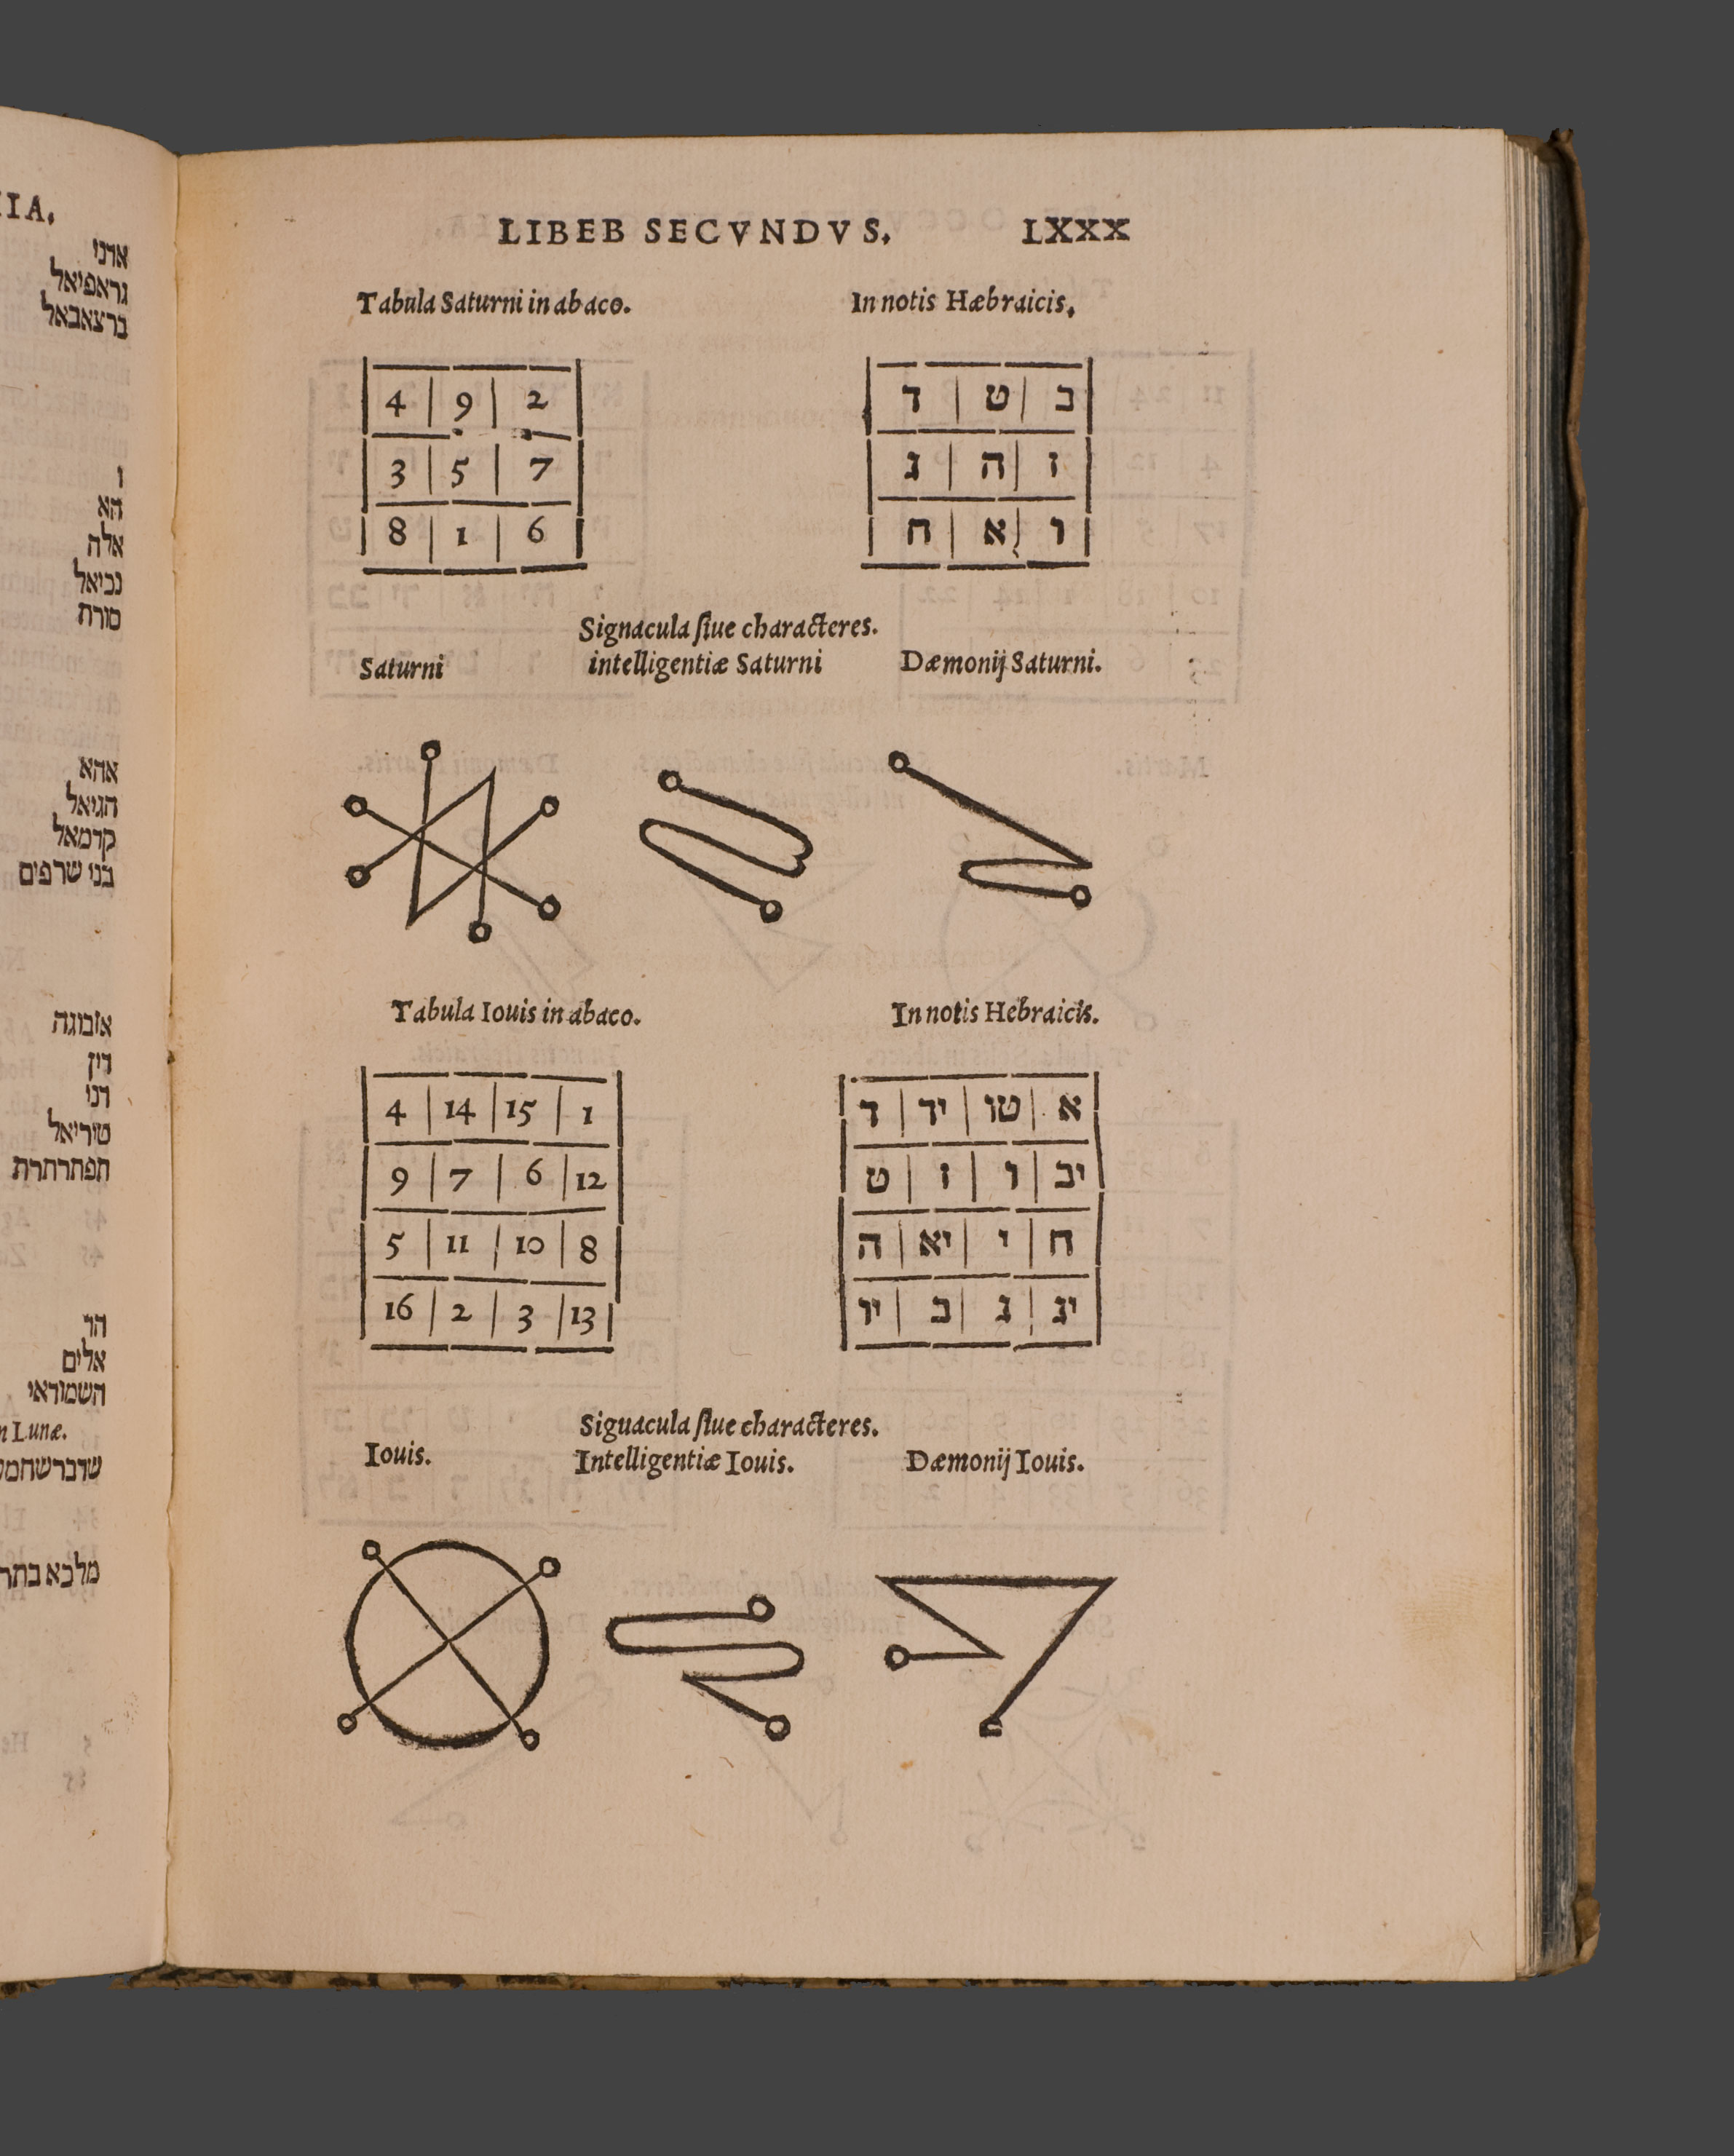 Diagrams from Agrippa's De occulta philosophia libri tres.